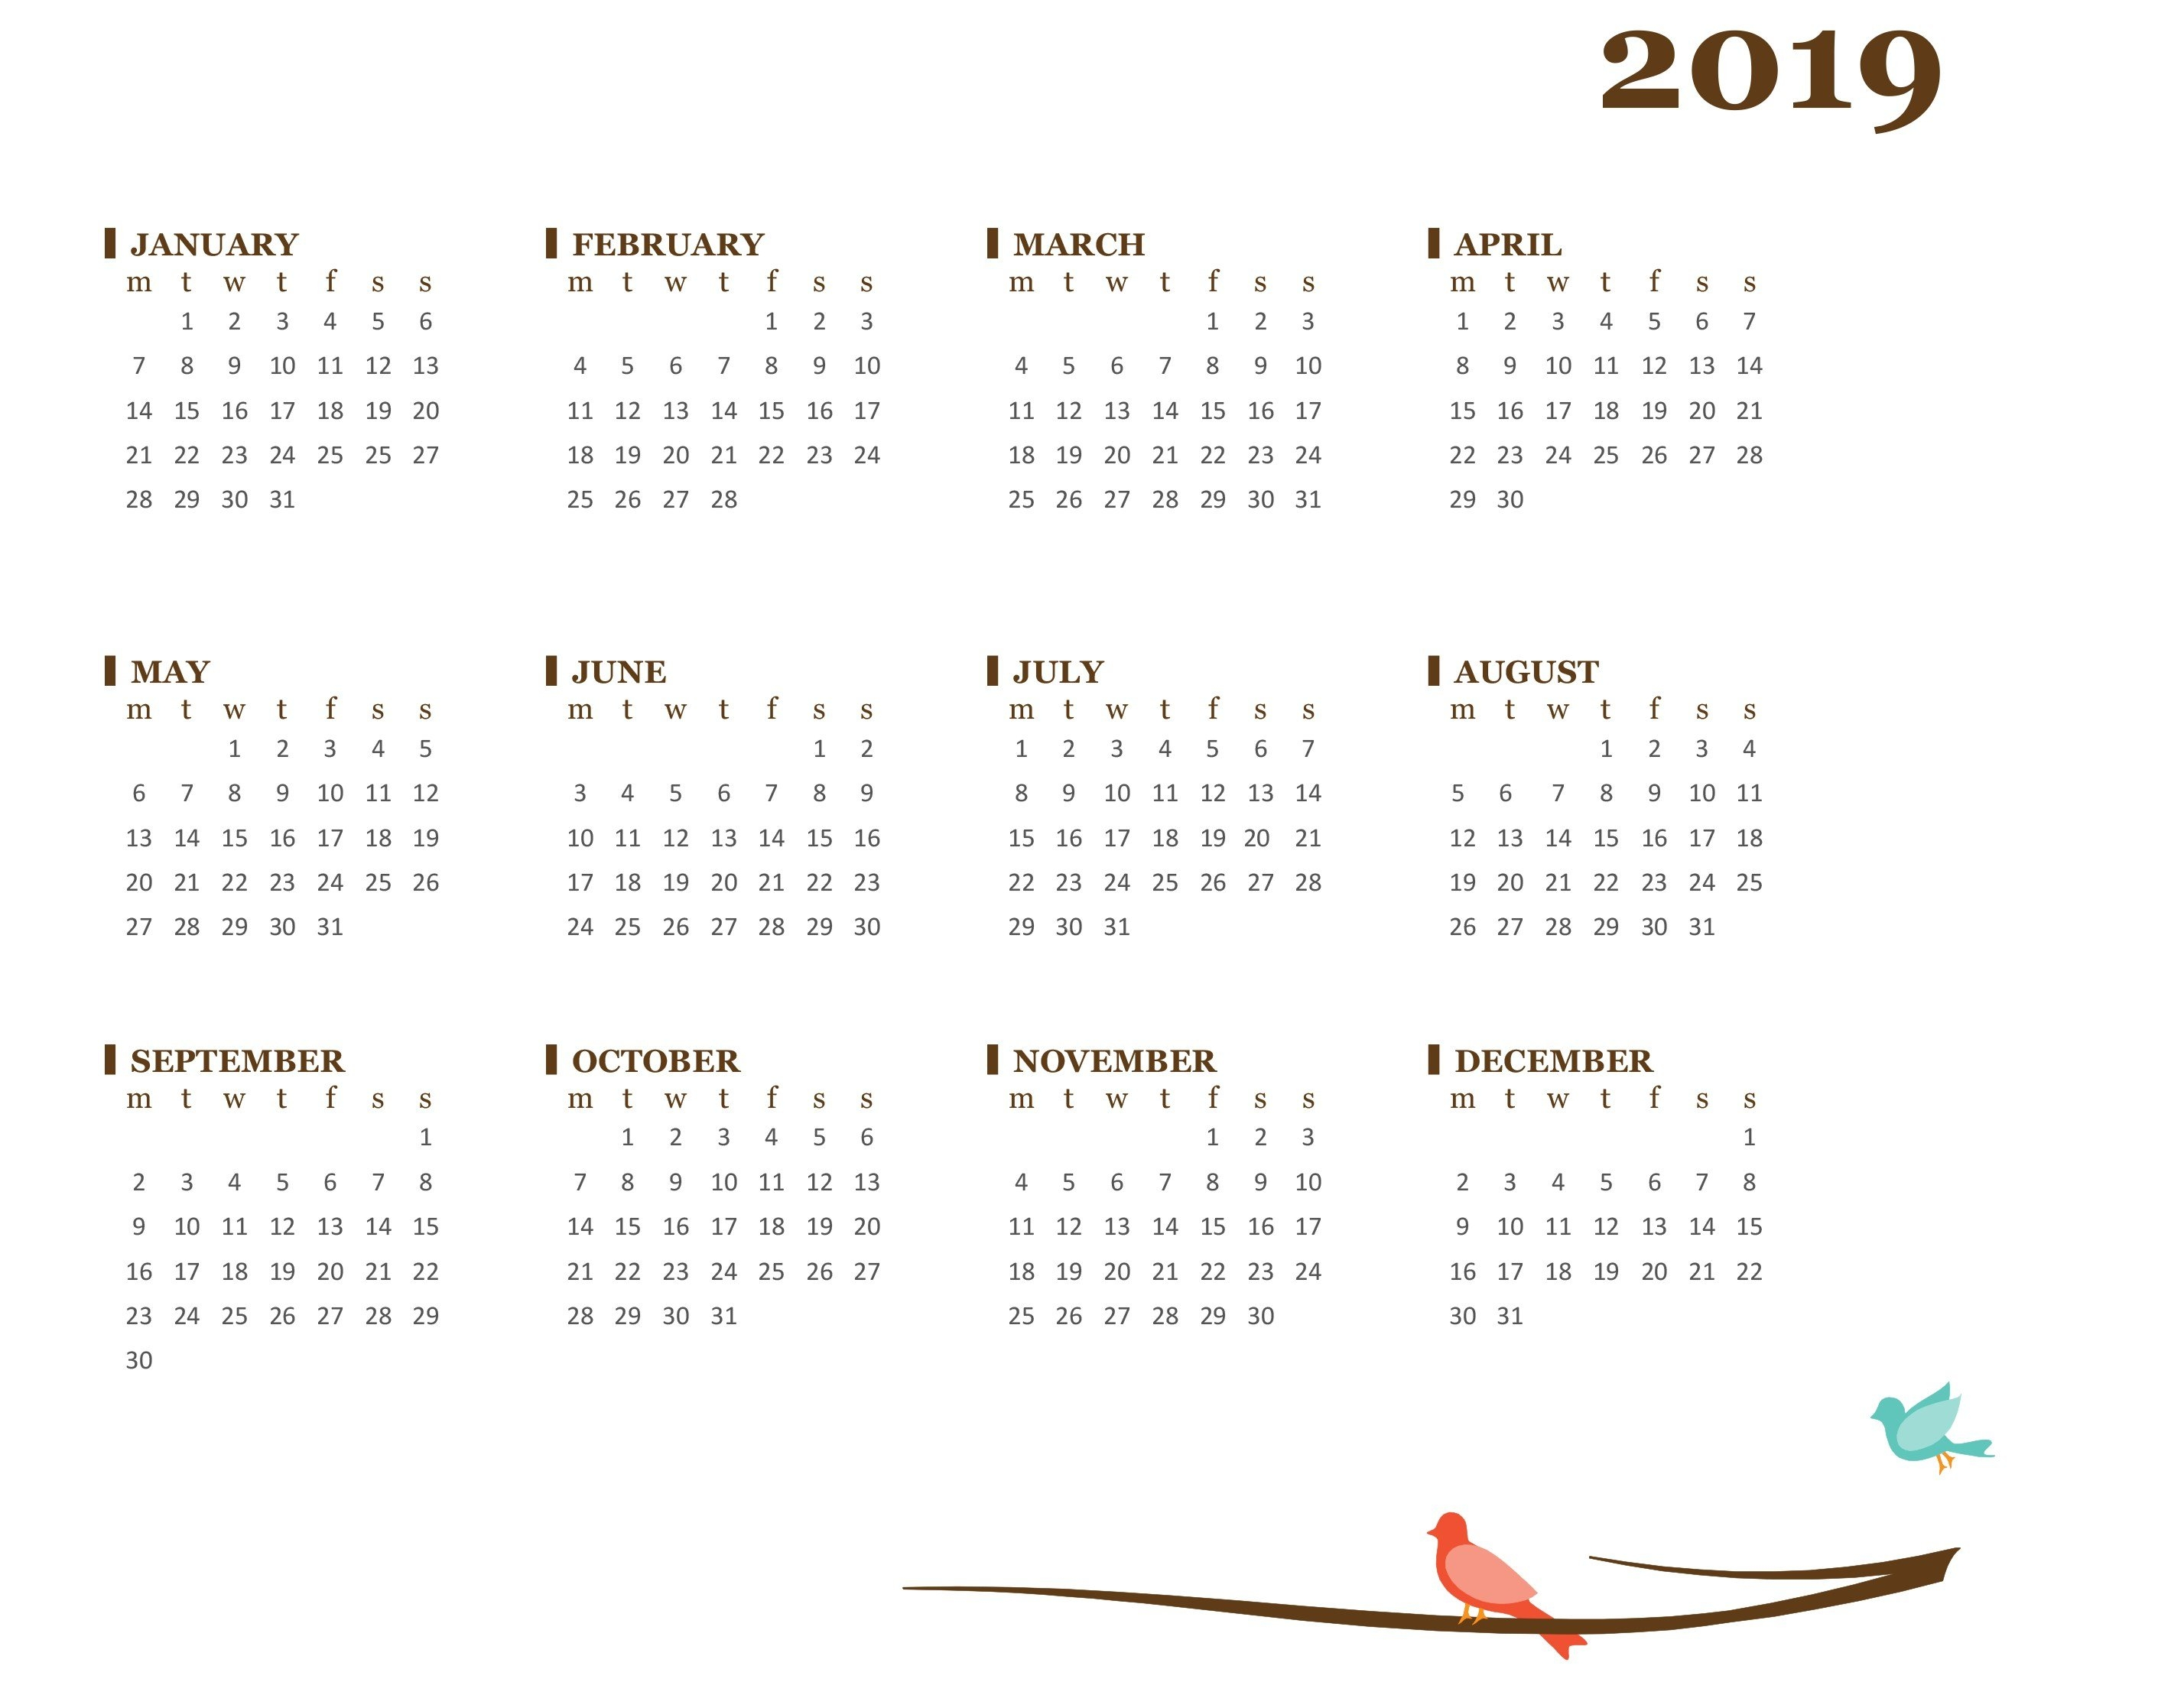 2019 Yearly Calendar (Mon Sun) Calendar 2019 With Pictures